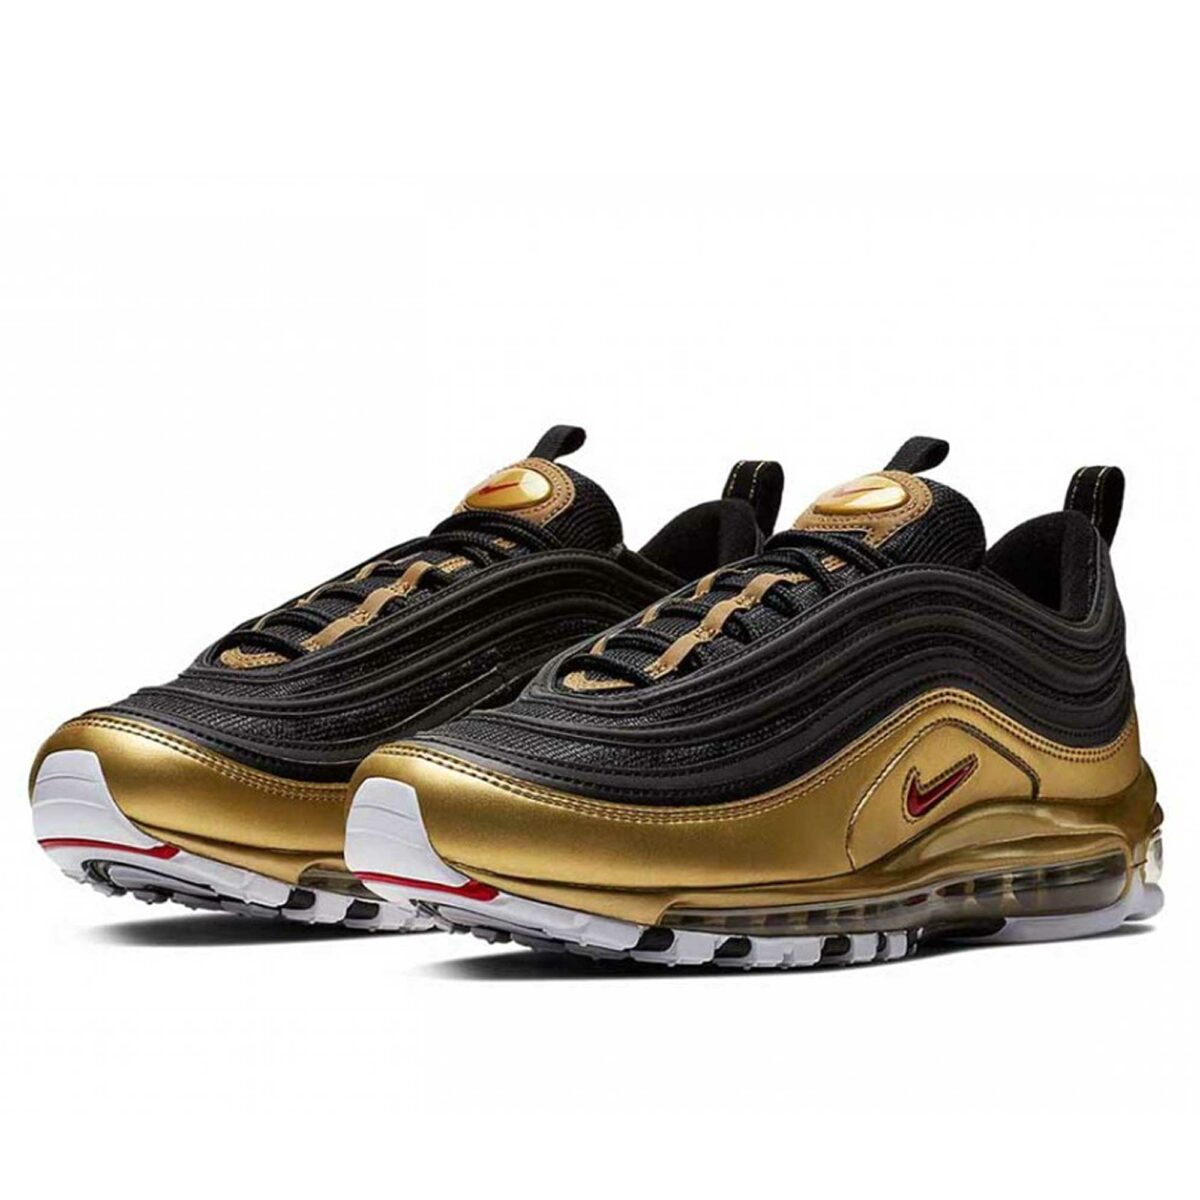 nike air max 97 black metalic gold AT5458_002 купить